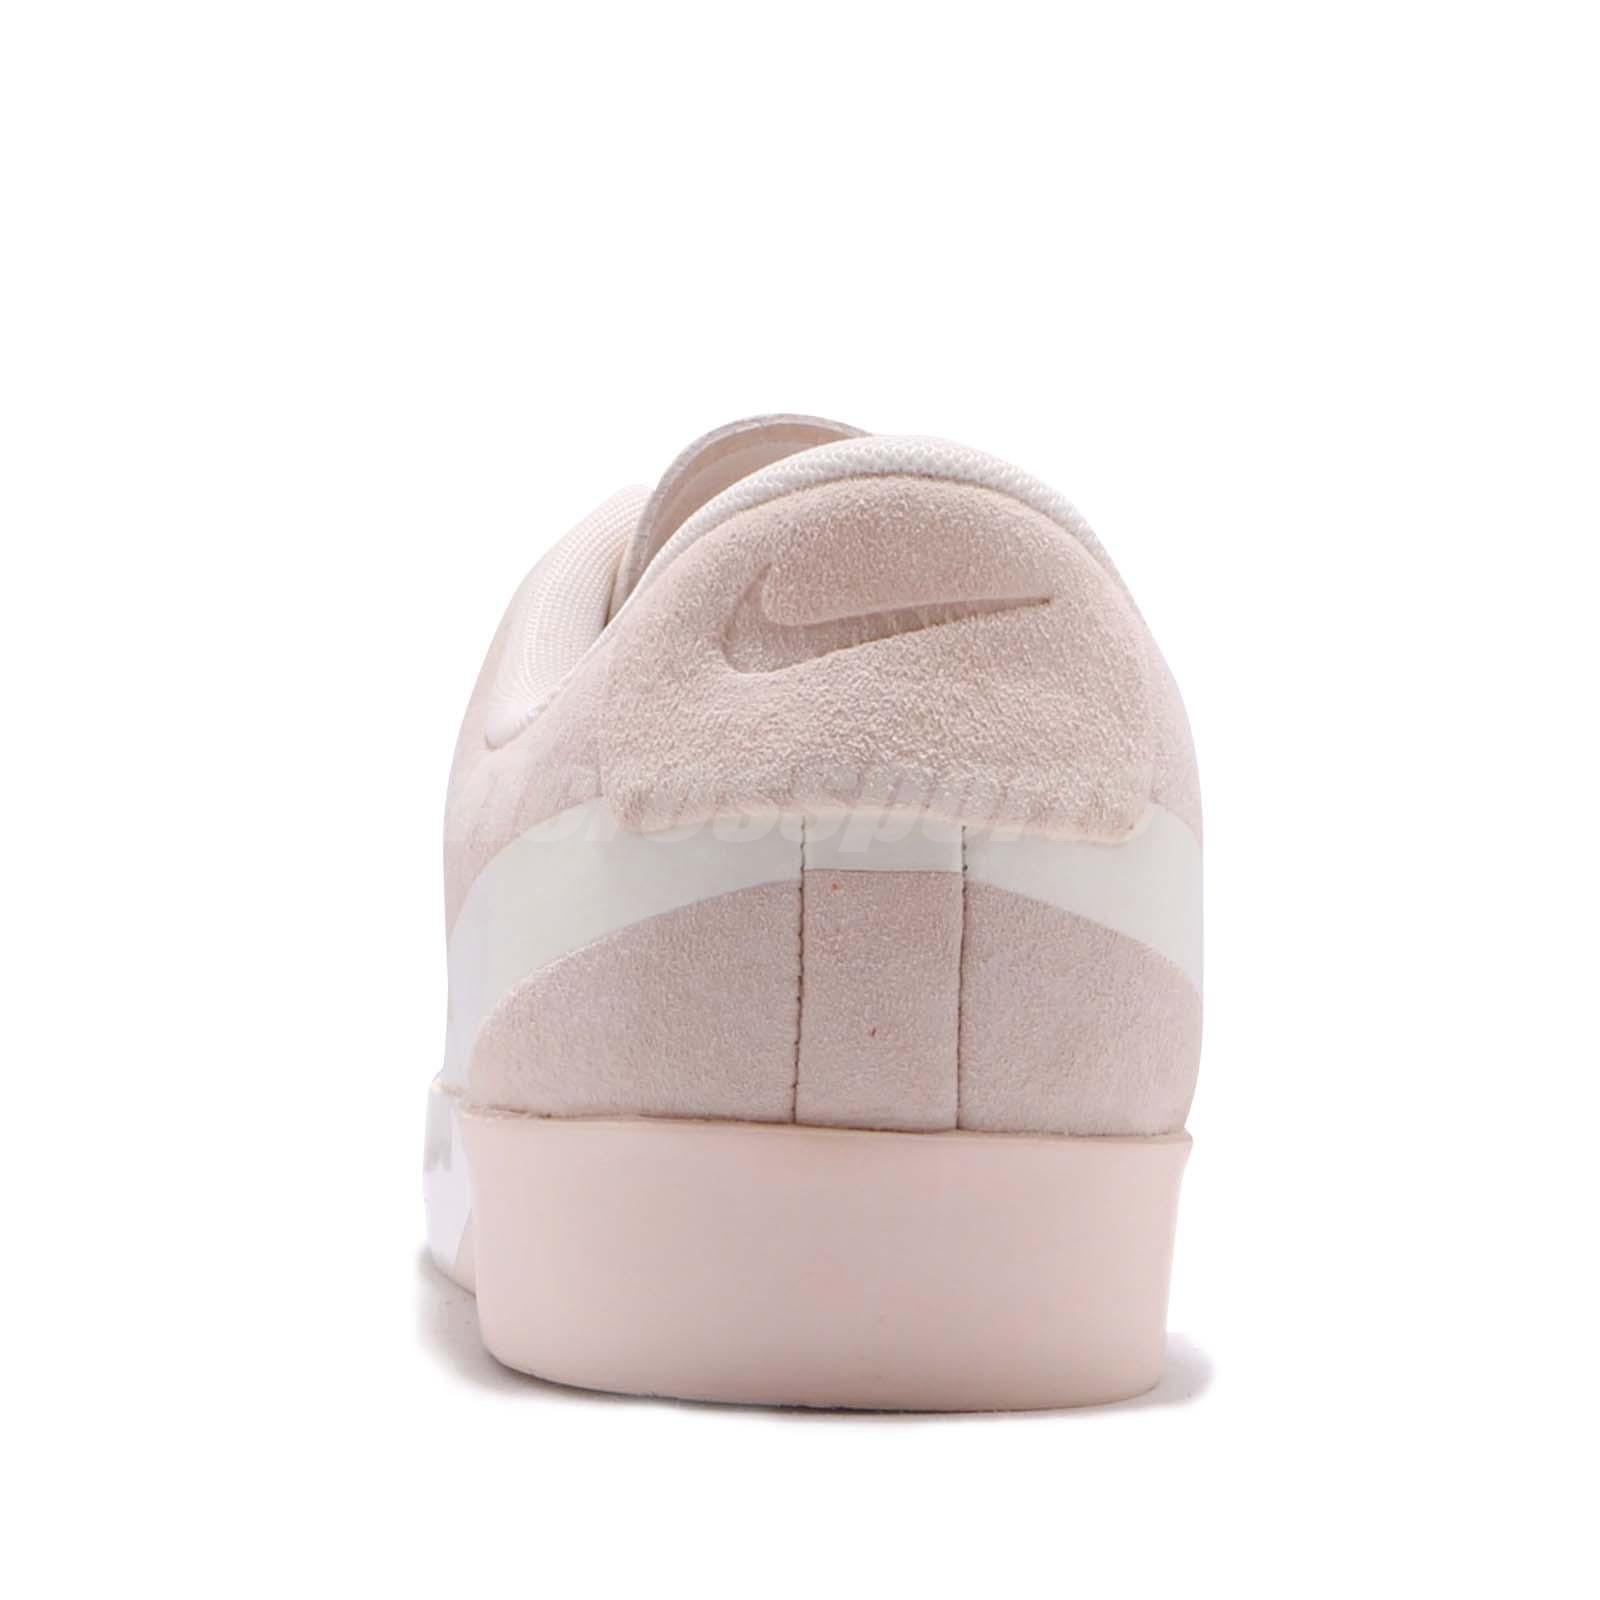 Clothing, Shoes & Accessories Athletic Shoes Nice Nike Wmns Blazer City Low Lx Big Logo Guava Ice Women Lifestyle Shoes Av2253-800